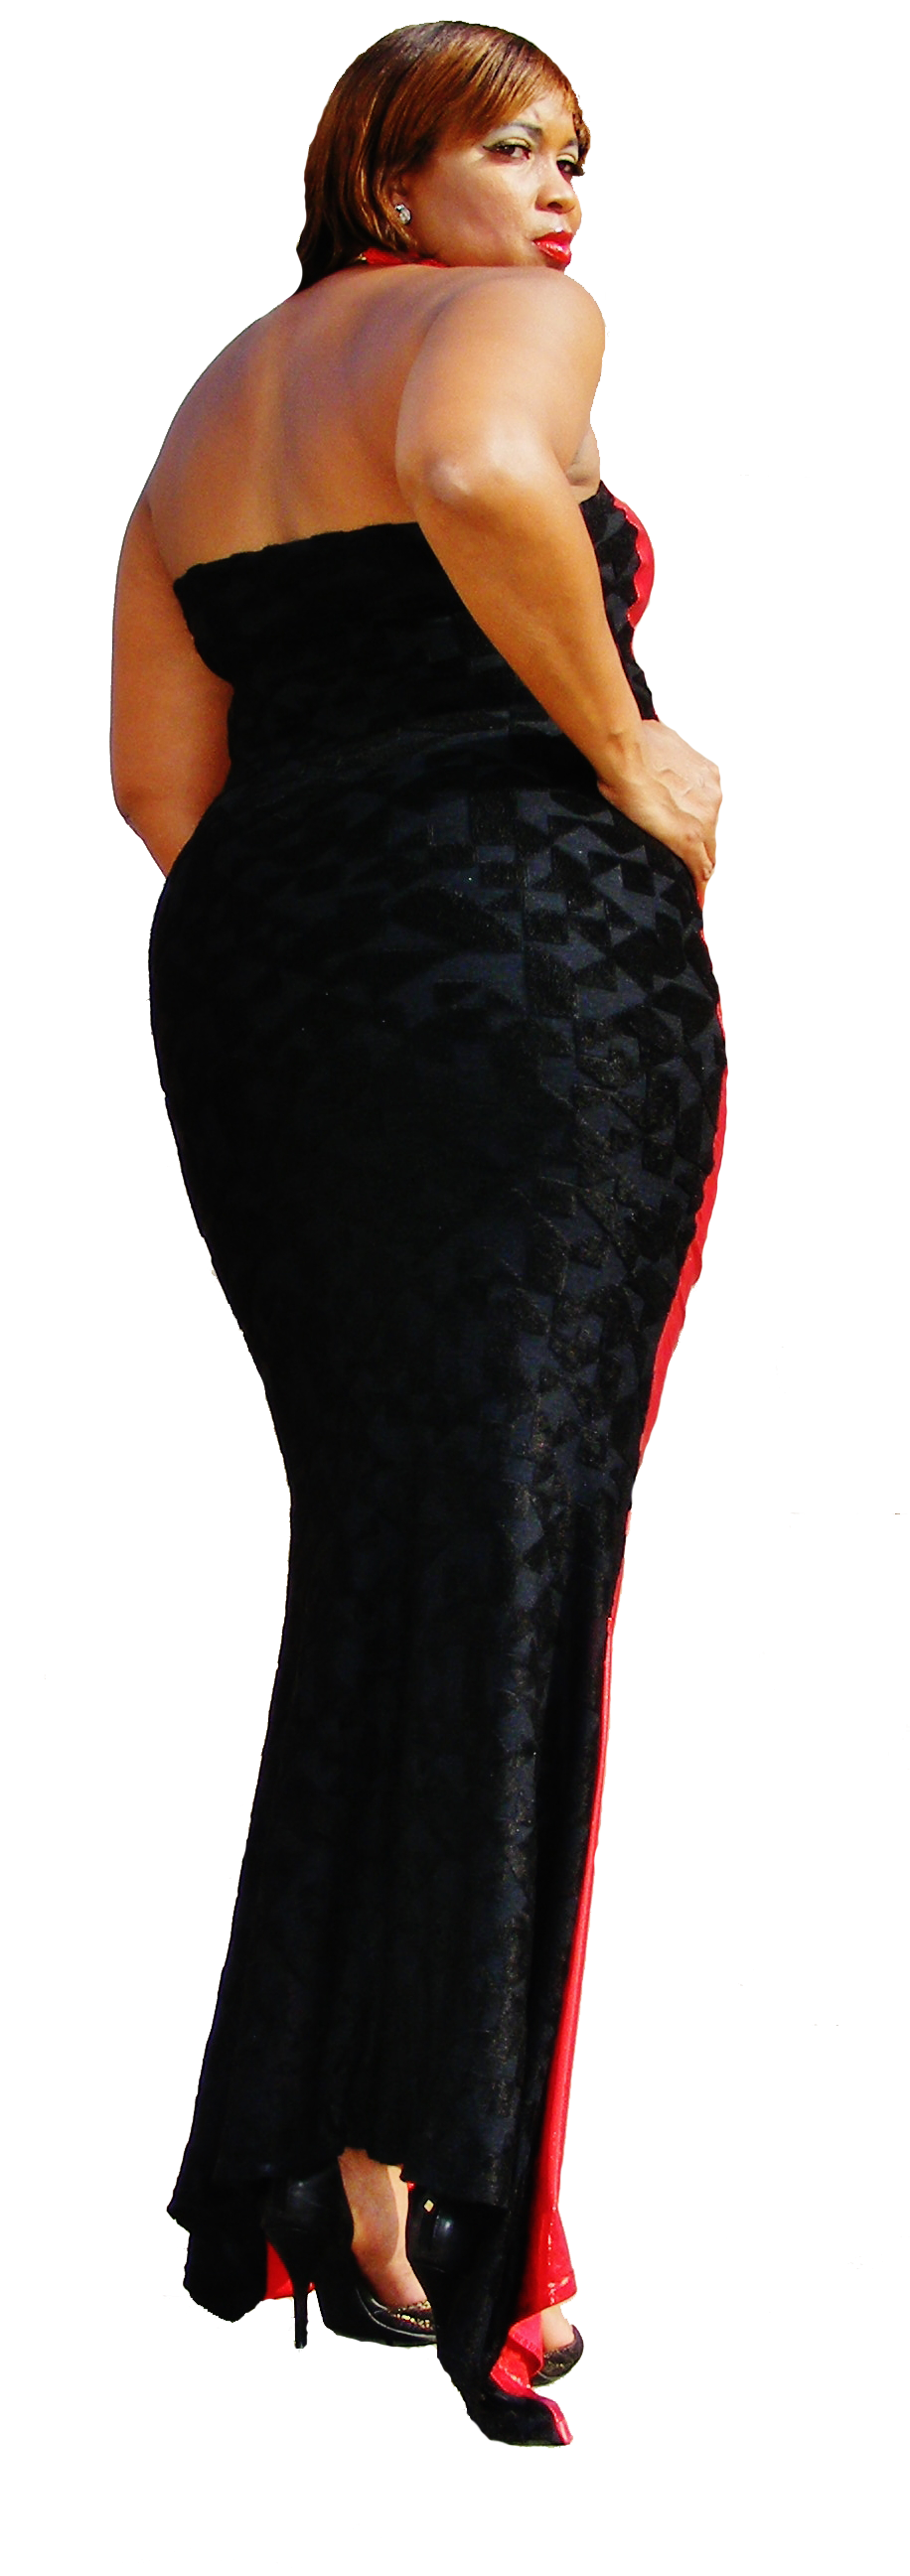 Red Carpet Two Sided Dress